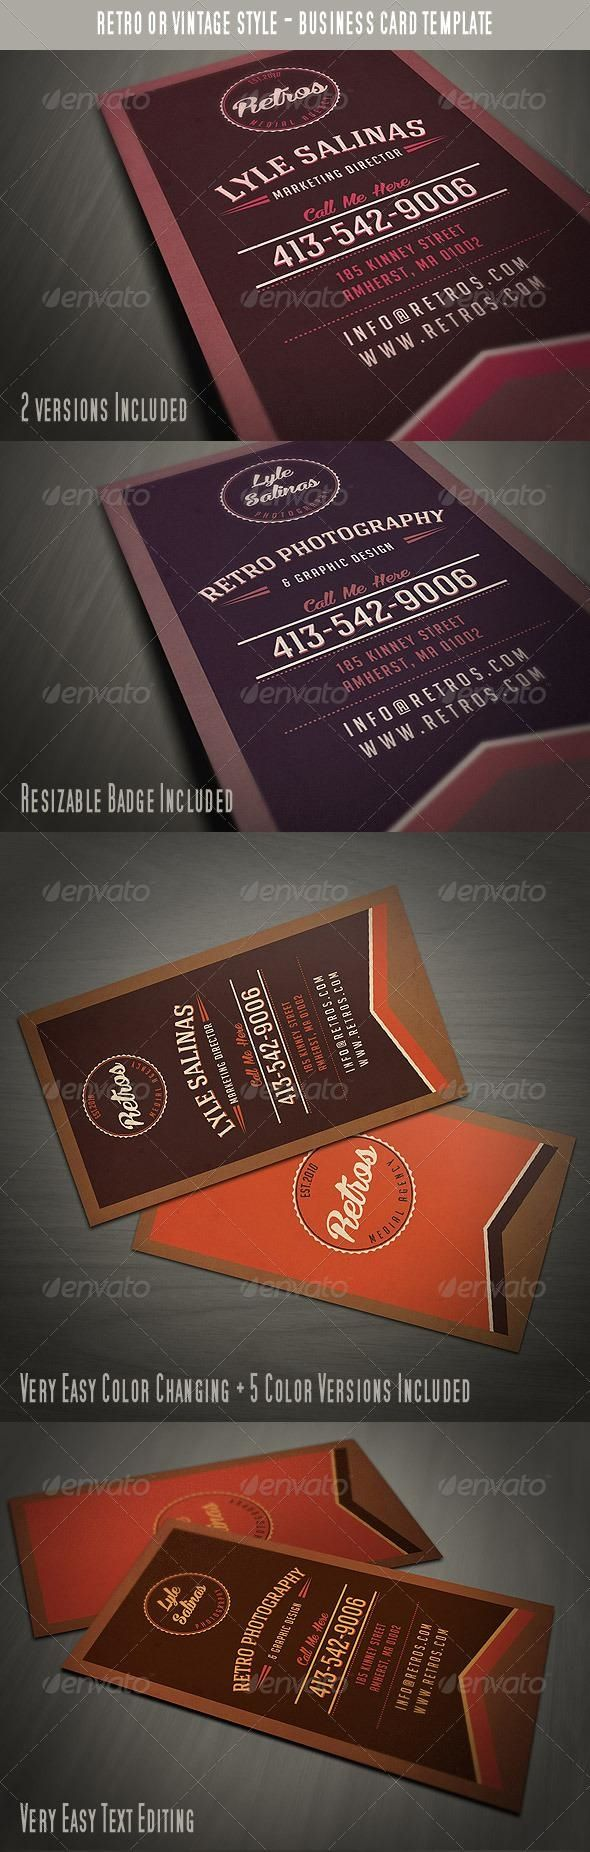 Vintage Style Business Card Retro Business Card Vintage Business Cards Business Cards Creative Templates